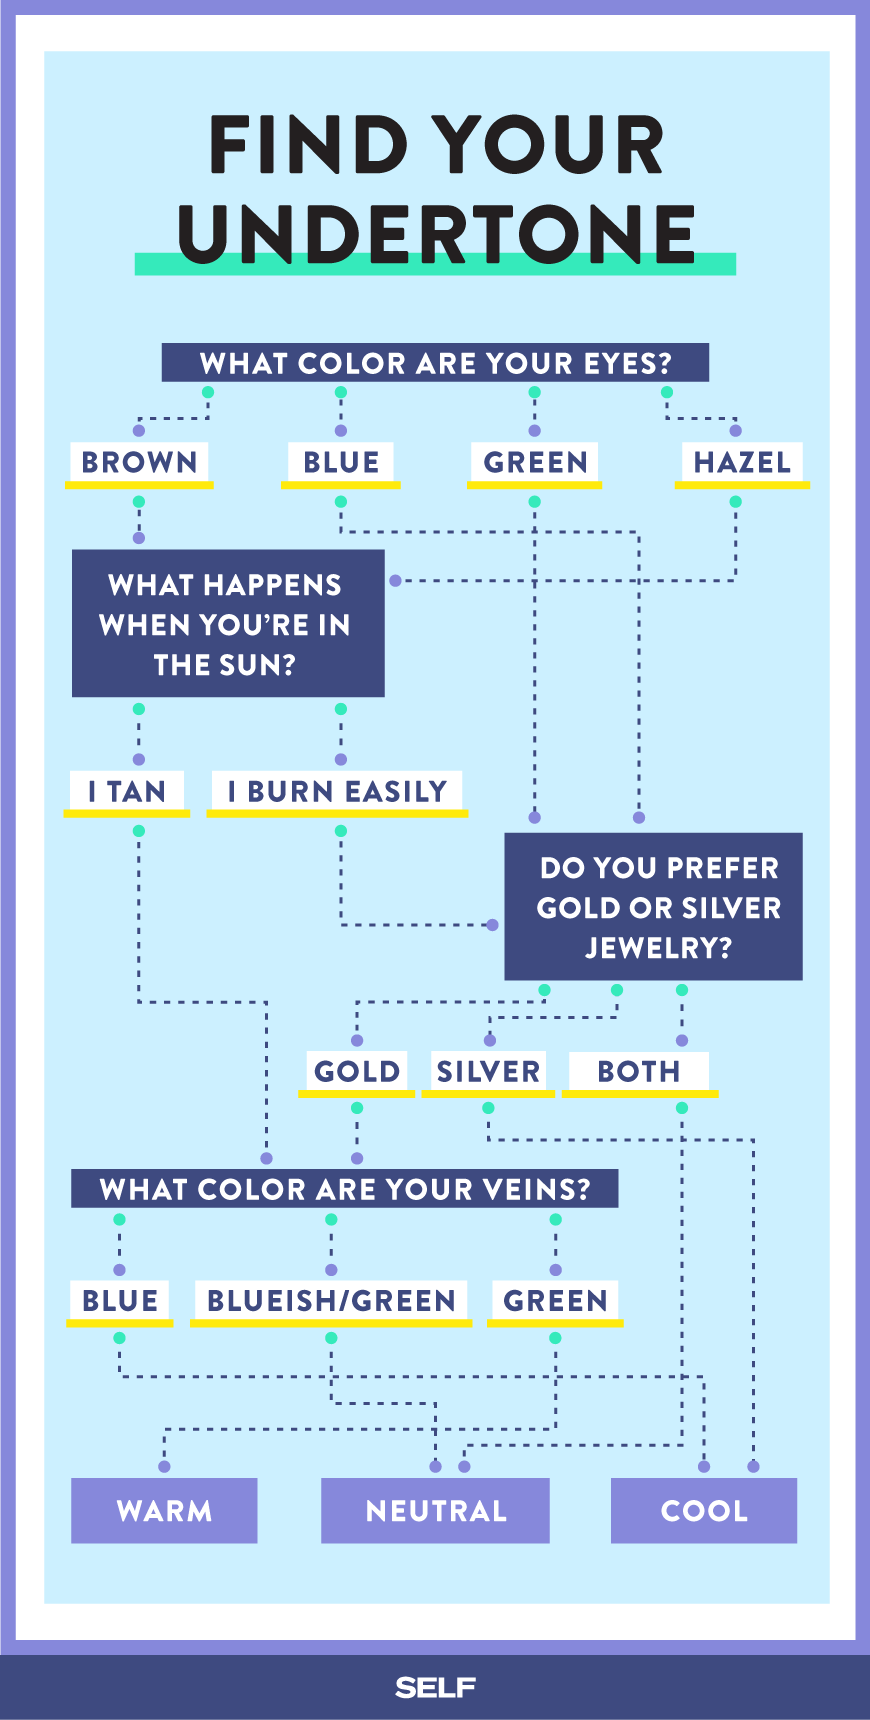 How To Find Out If Your Skin Has Warm, Neutral, Or Cool Undertones ...